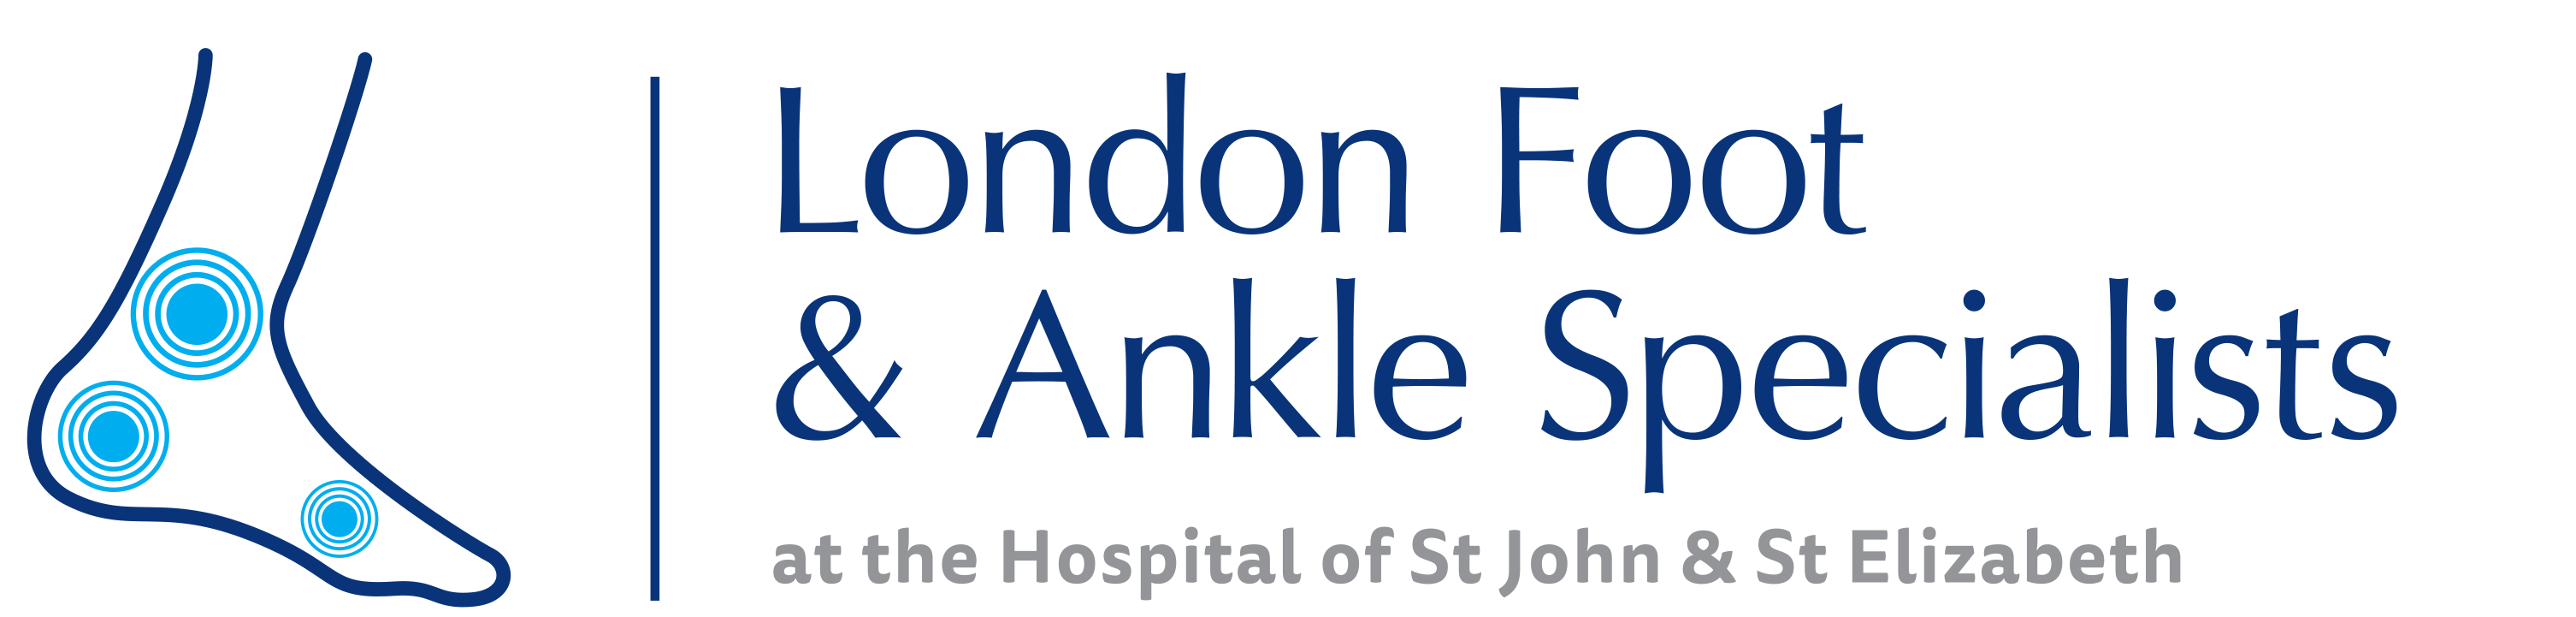 London Foot & Ankle Specialists